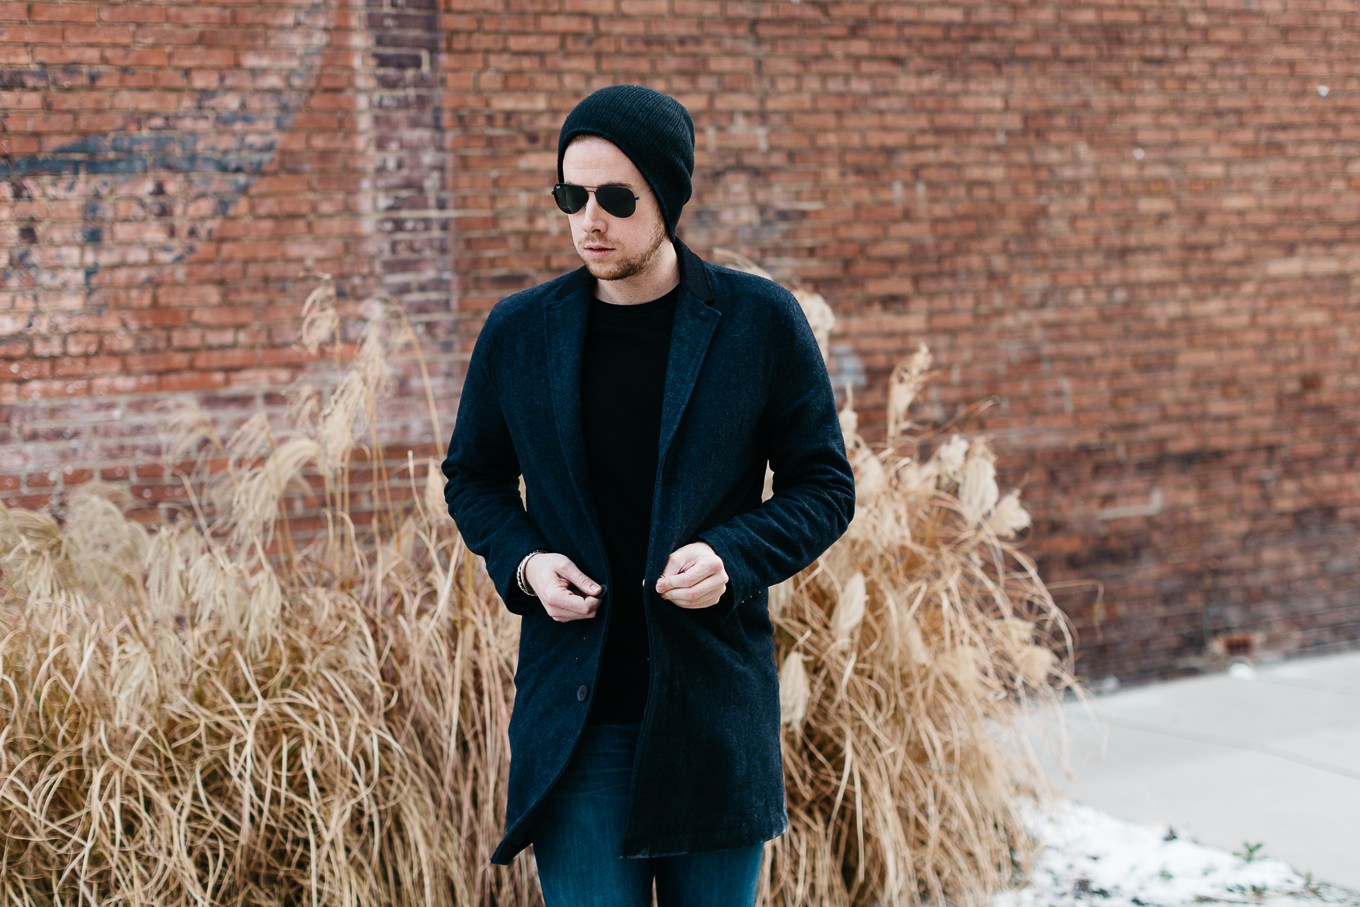 mens fashion blog, mens fashion blogger, how to wear navy and black together, when to wear navy and black together